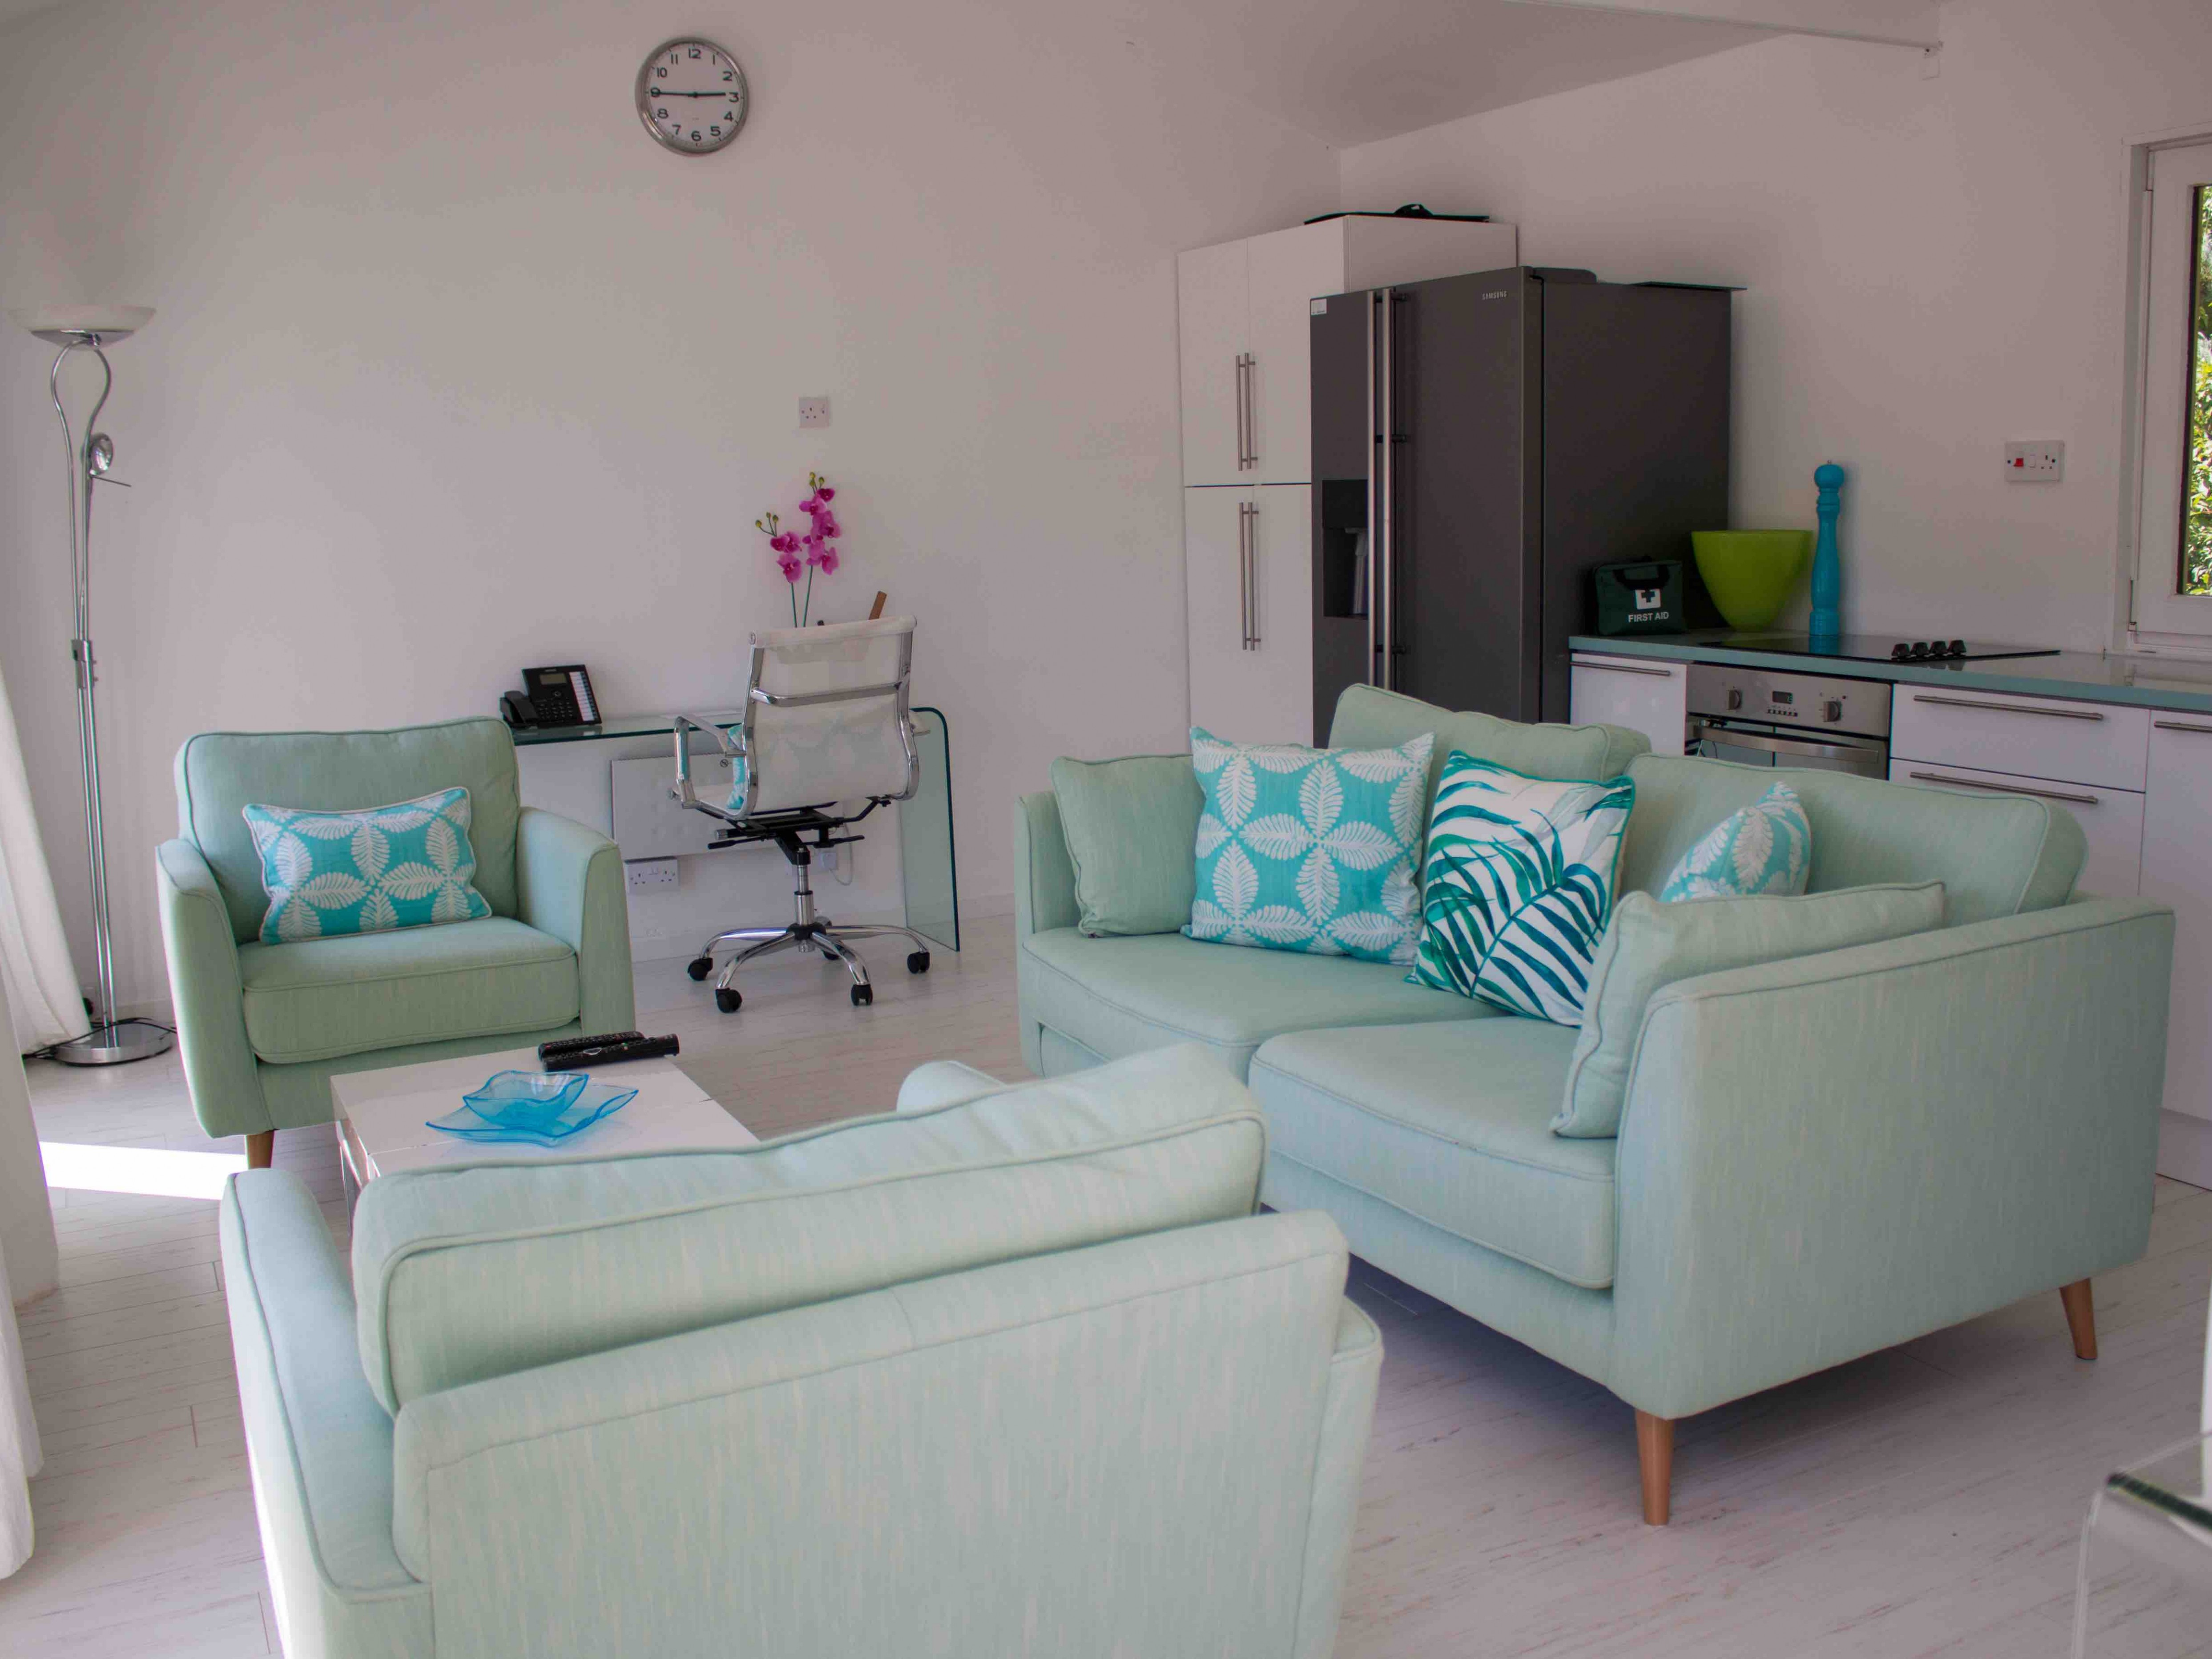 Summer House living space